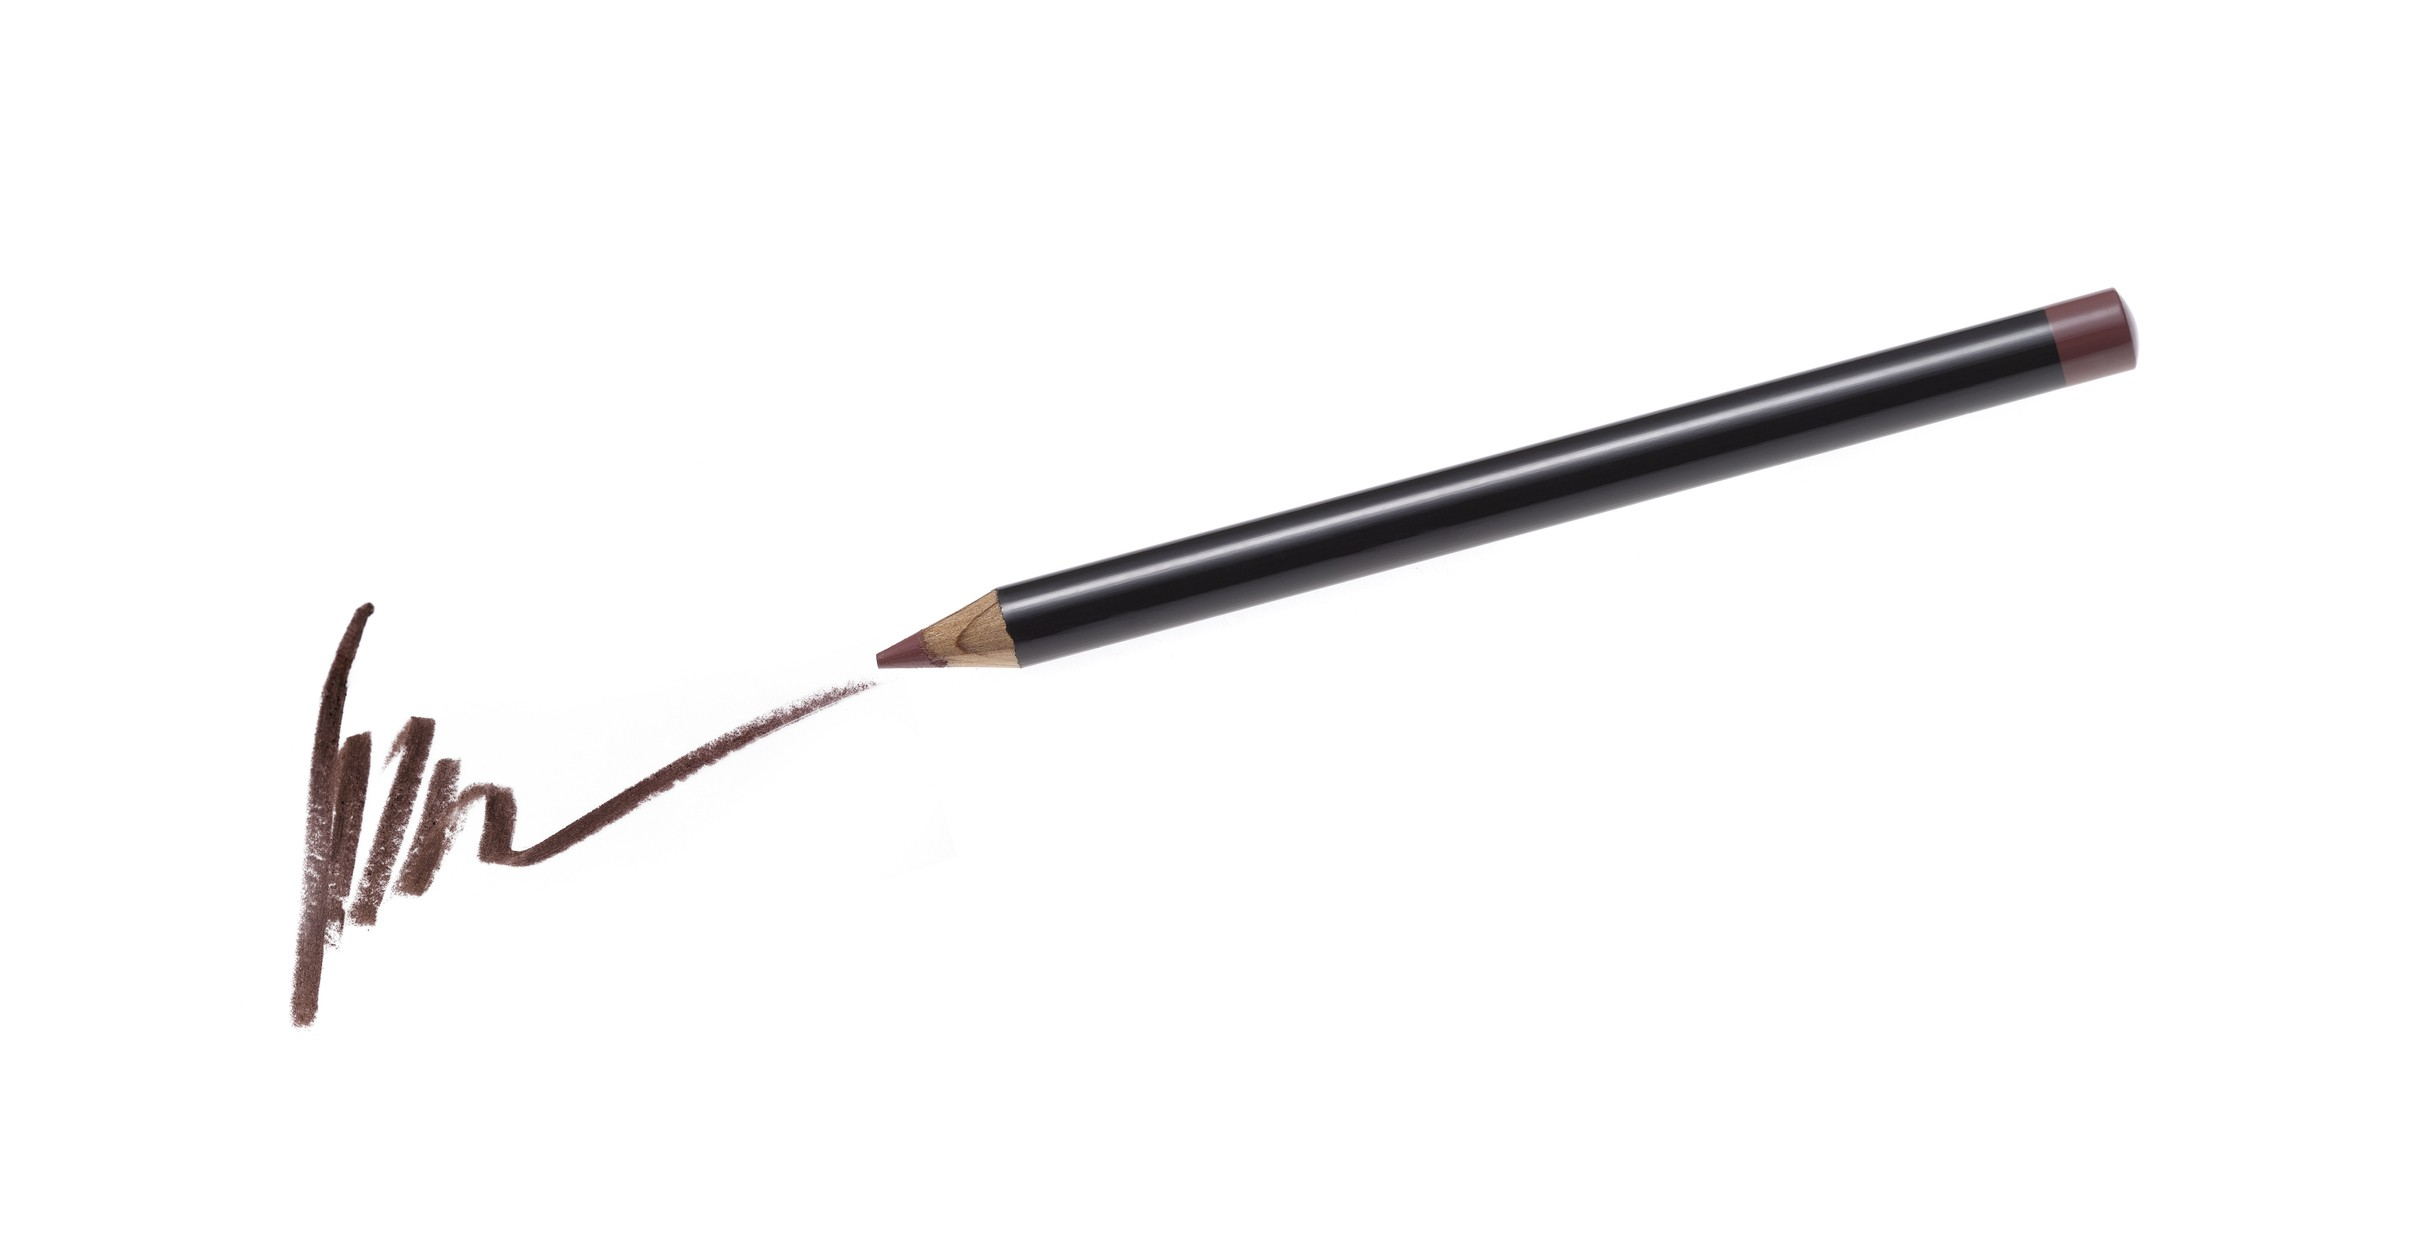 Cosmetic pencil and stroke